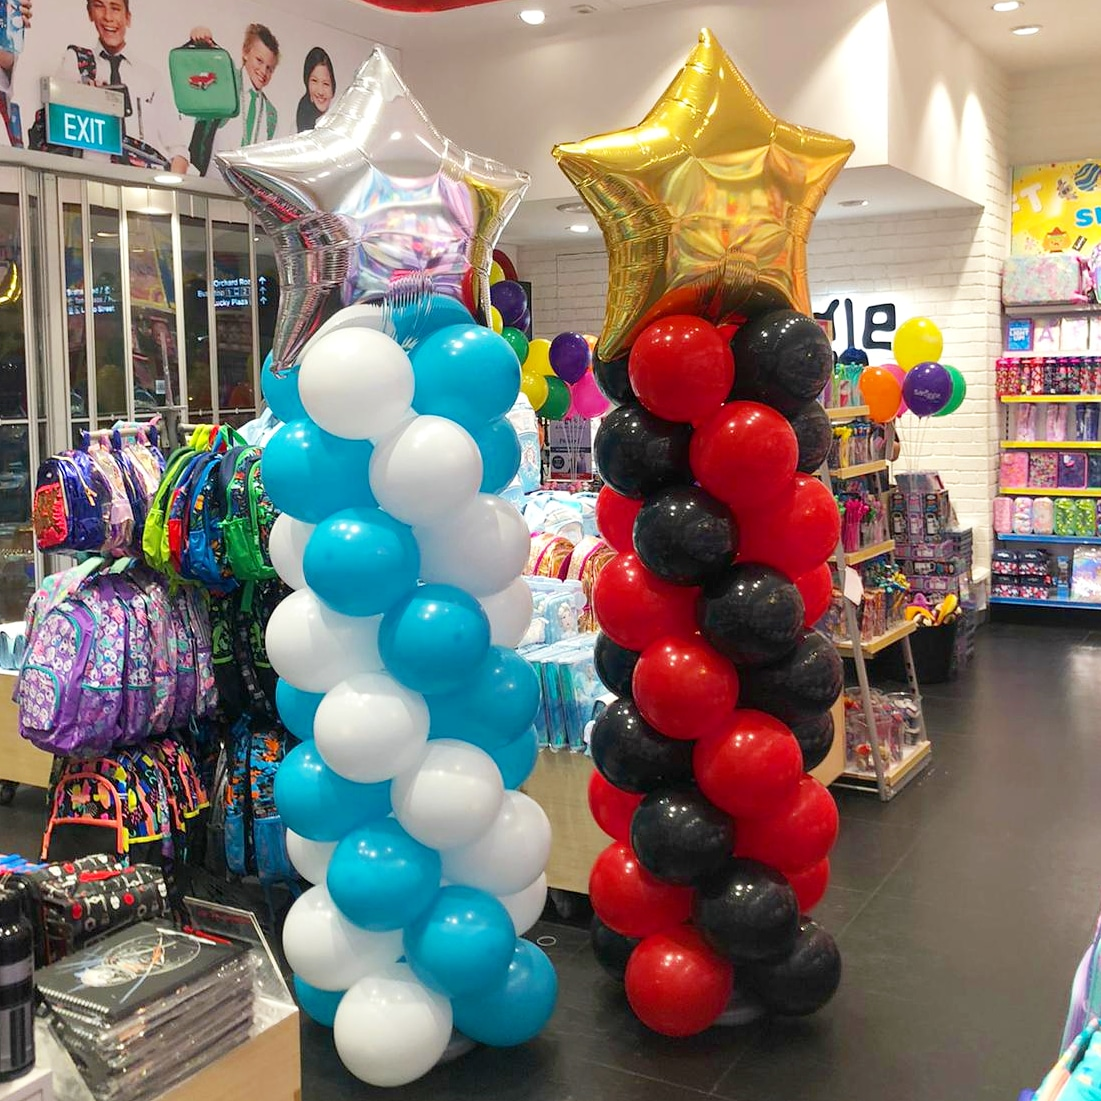 Simple Balloon Columns for Sale